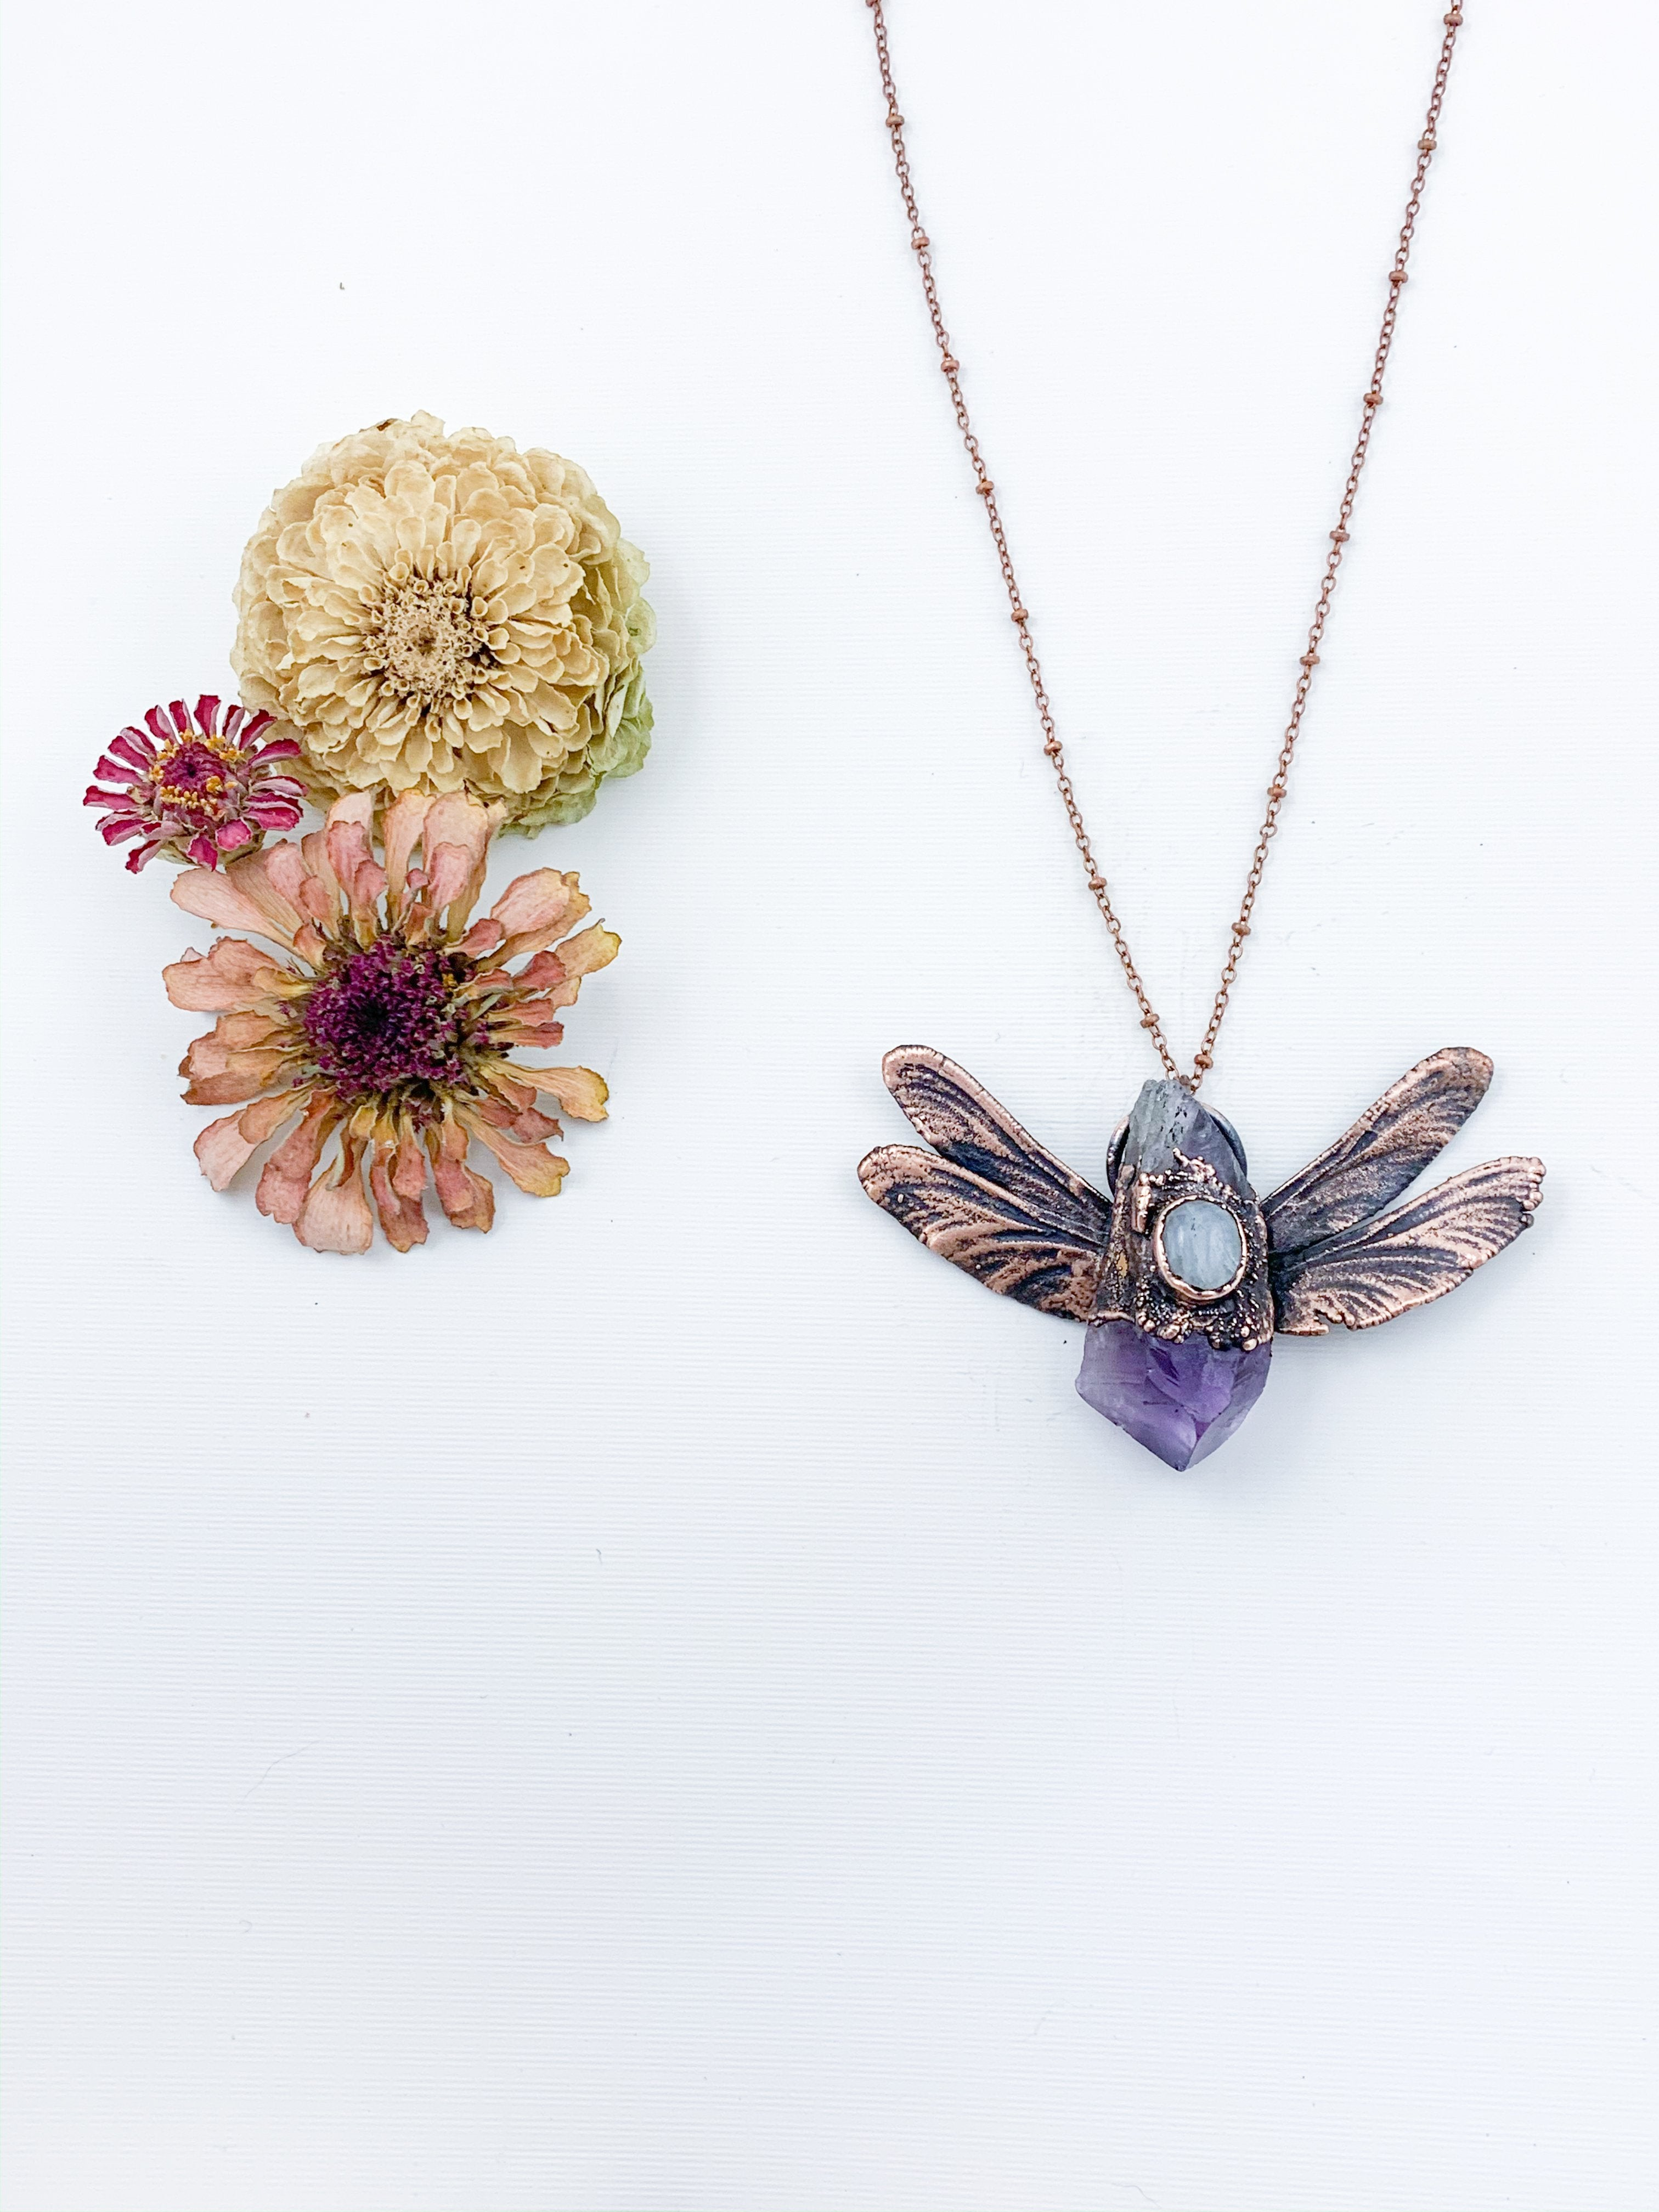 Amethyst Dragonfly Pendant with Moonstone - Allie & Tess